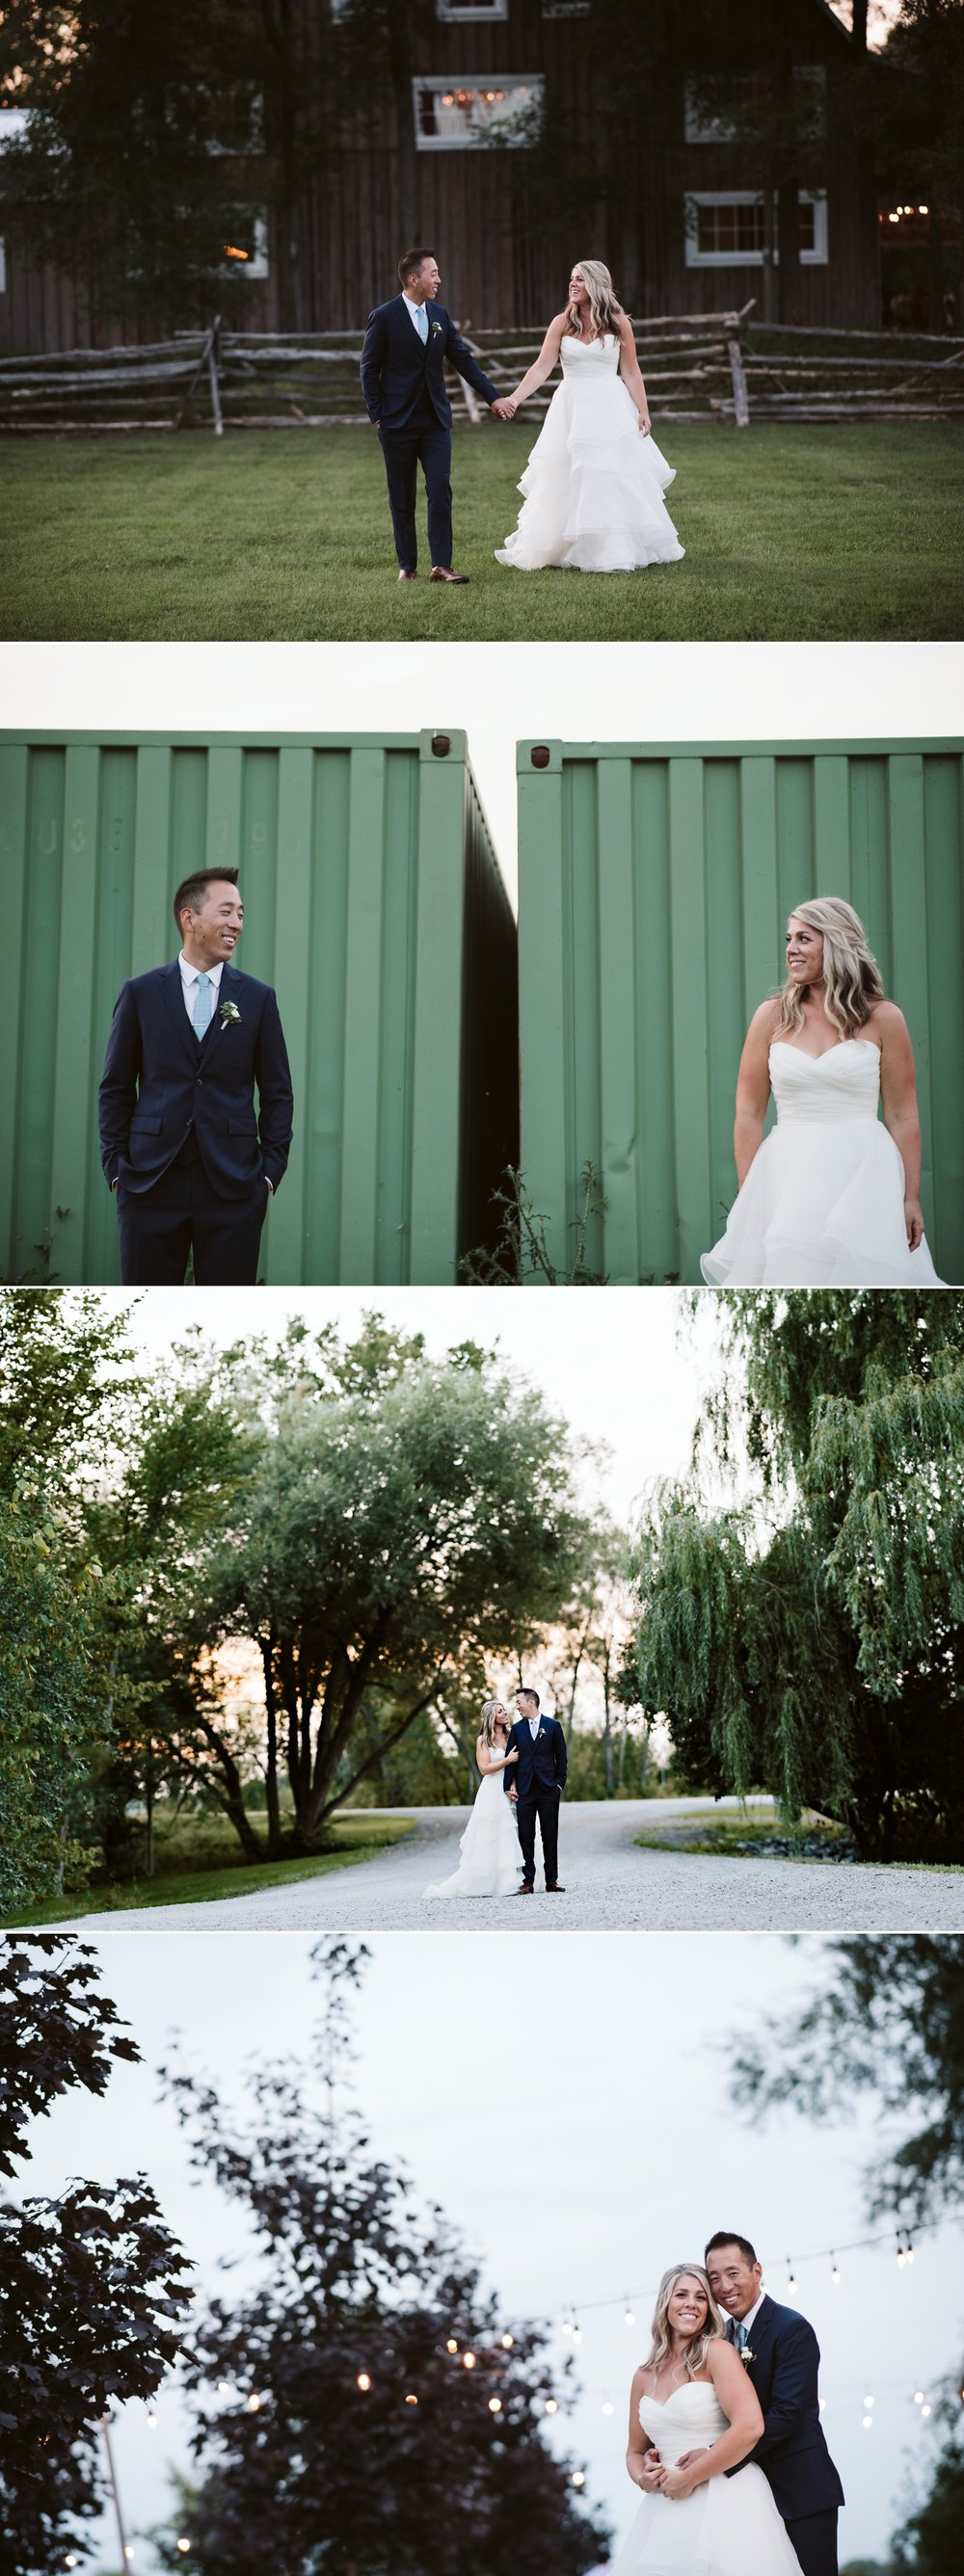 sunset portraits of bride and groom during a wedding at stonefields in carelton place ontario